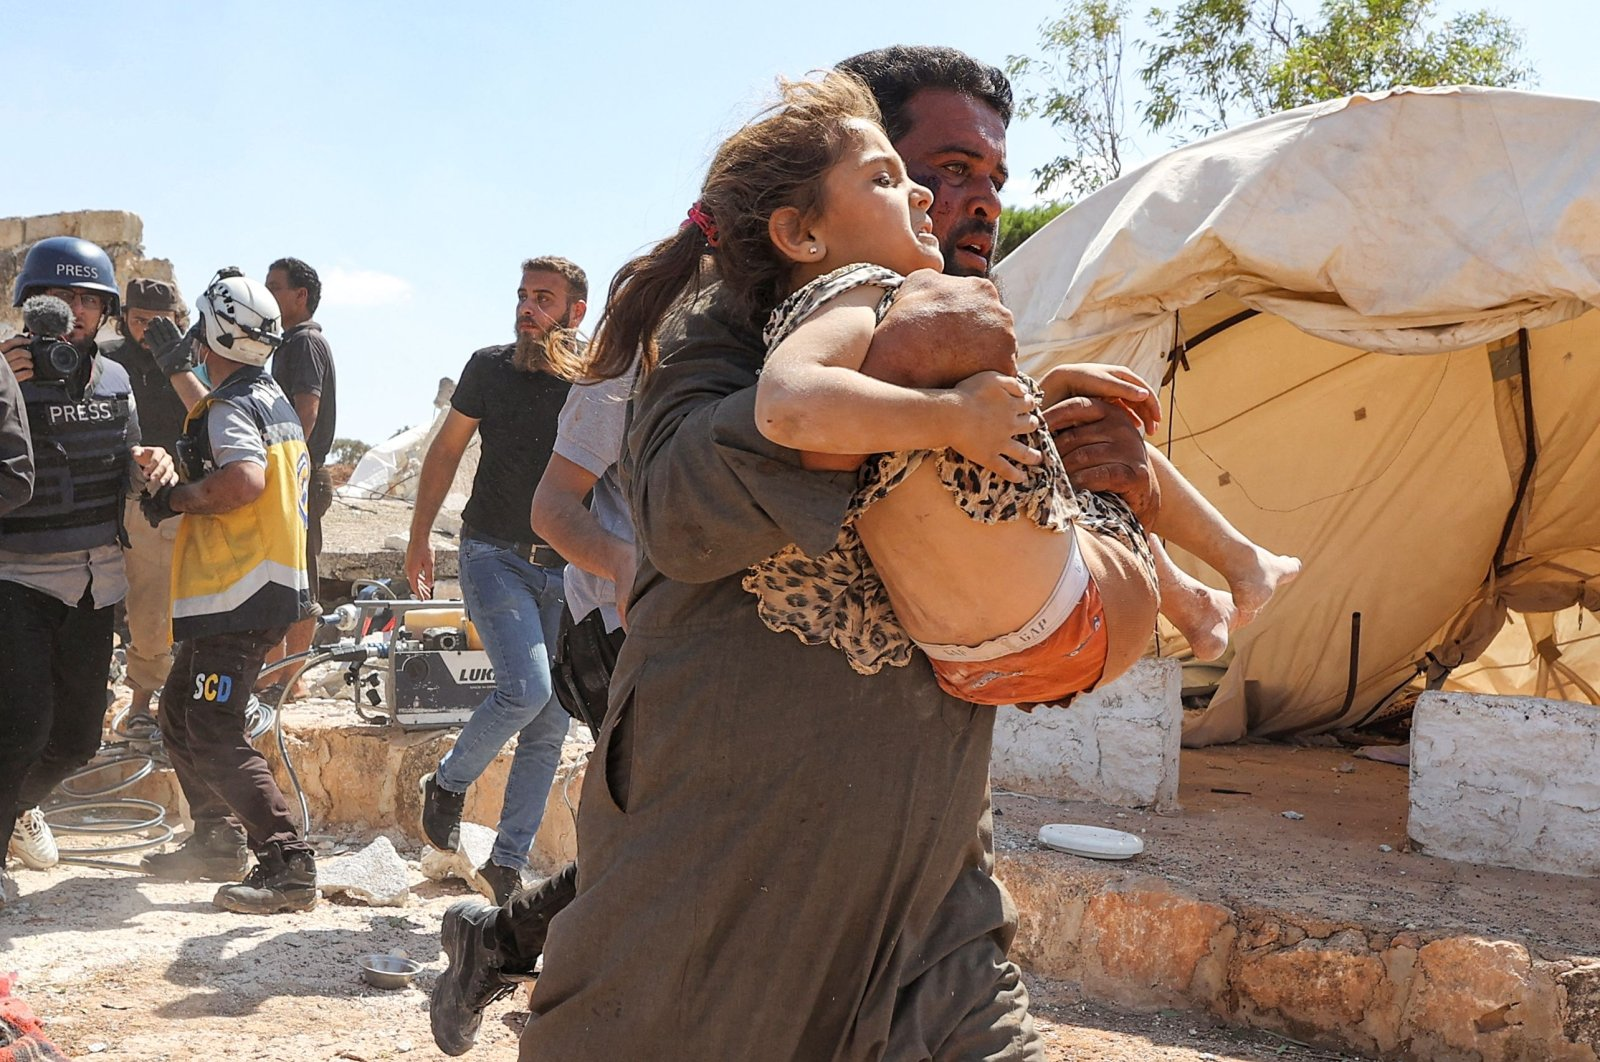 A man carries away a girl that was injured during aerial bombardment near a make-shift camp for displaced Syrians near the town of Kafraya in the north of Syria's Idlib province, Sept. 7, 2021. (AFP Photo)